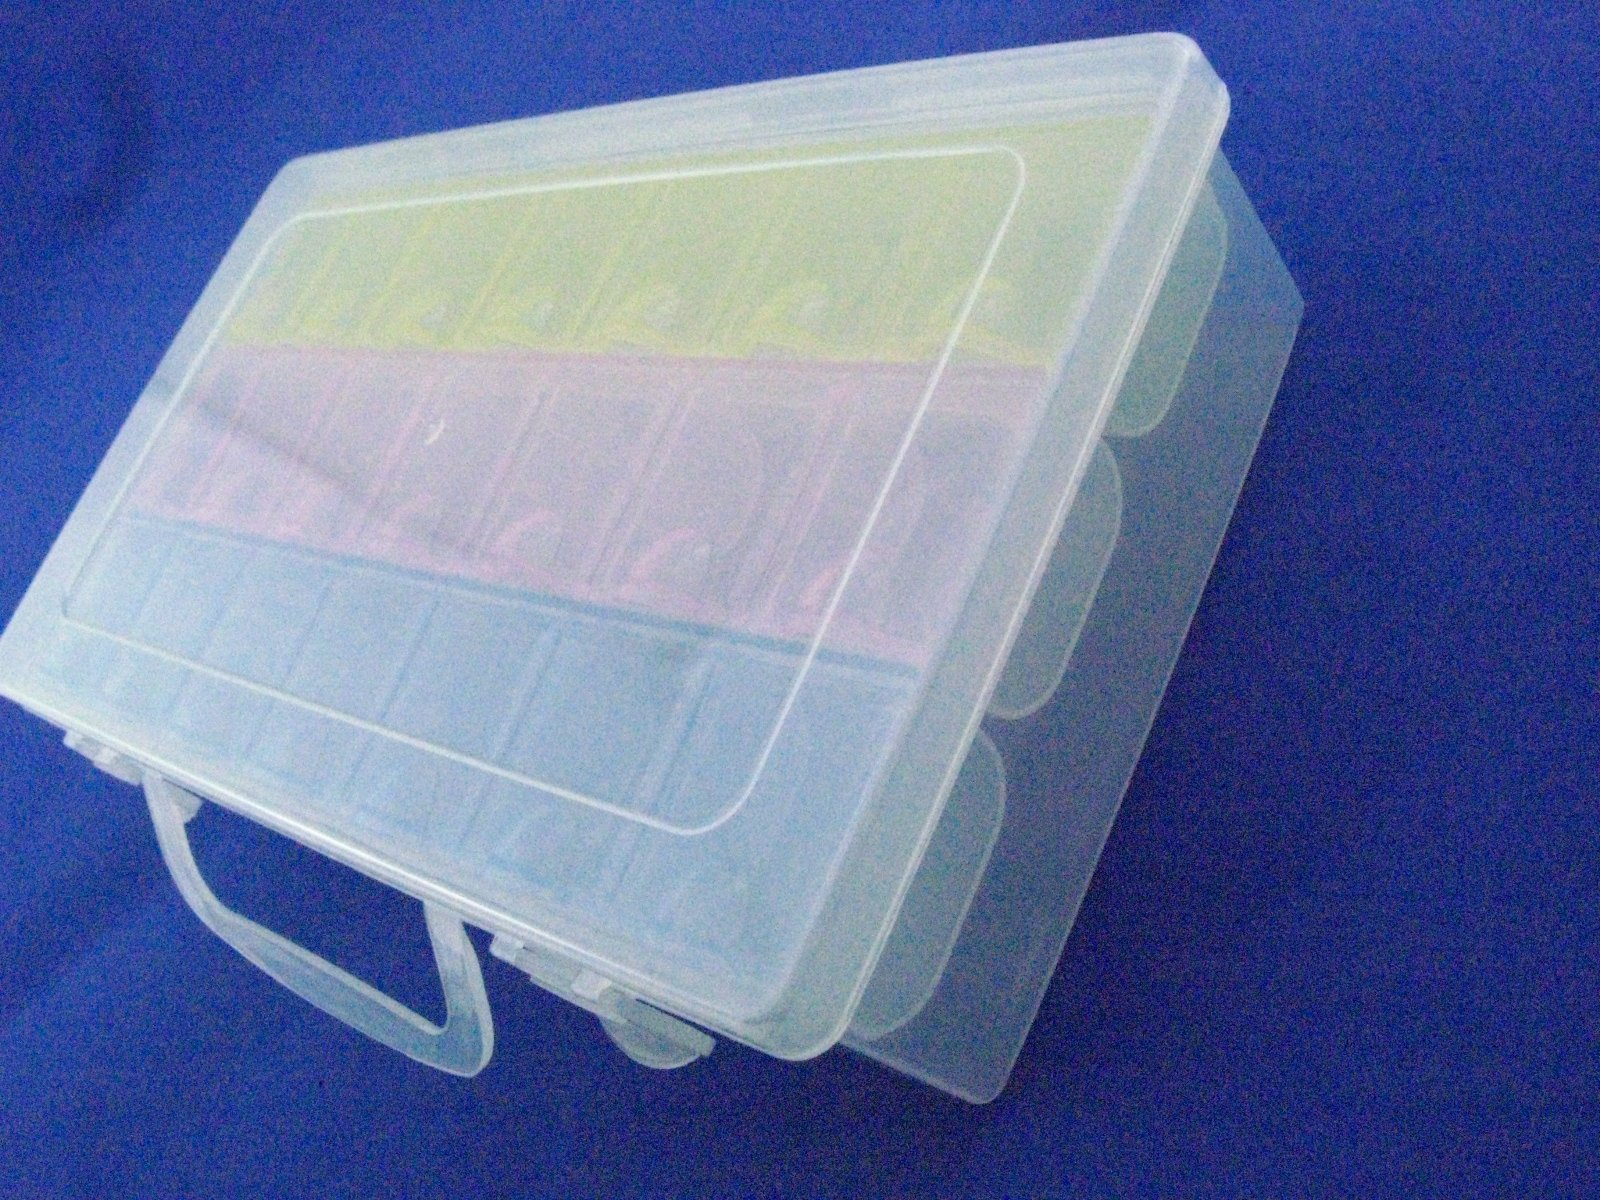 2pcs/lot,Electronic Components Storage Box, 21 lattice/blocks, Large-space,Component Parts Box,22.5*13*5.4cm